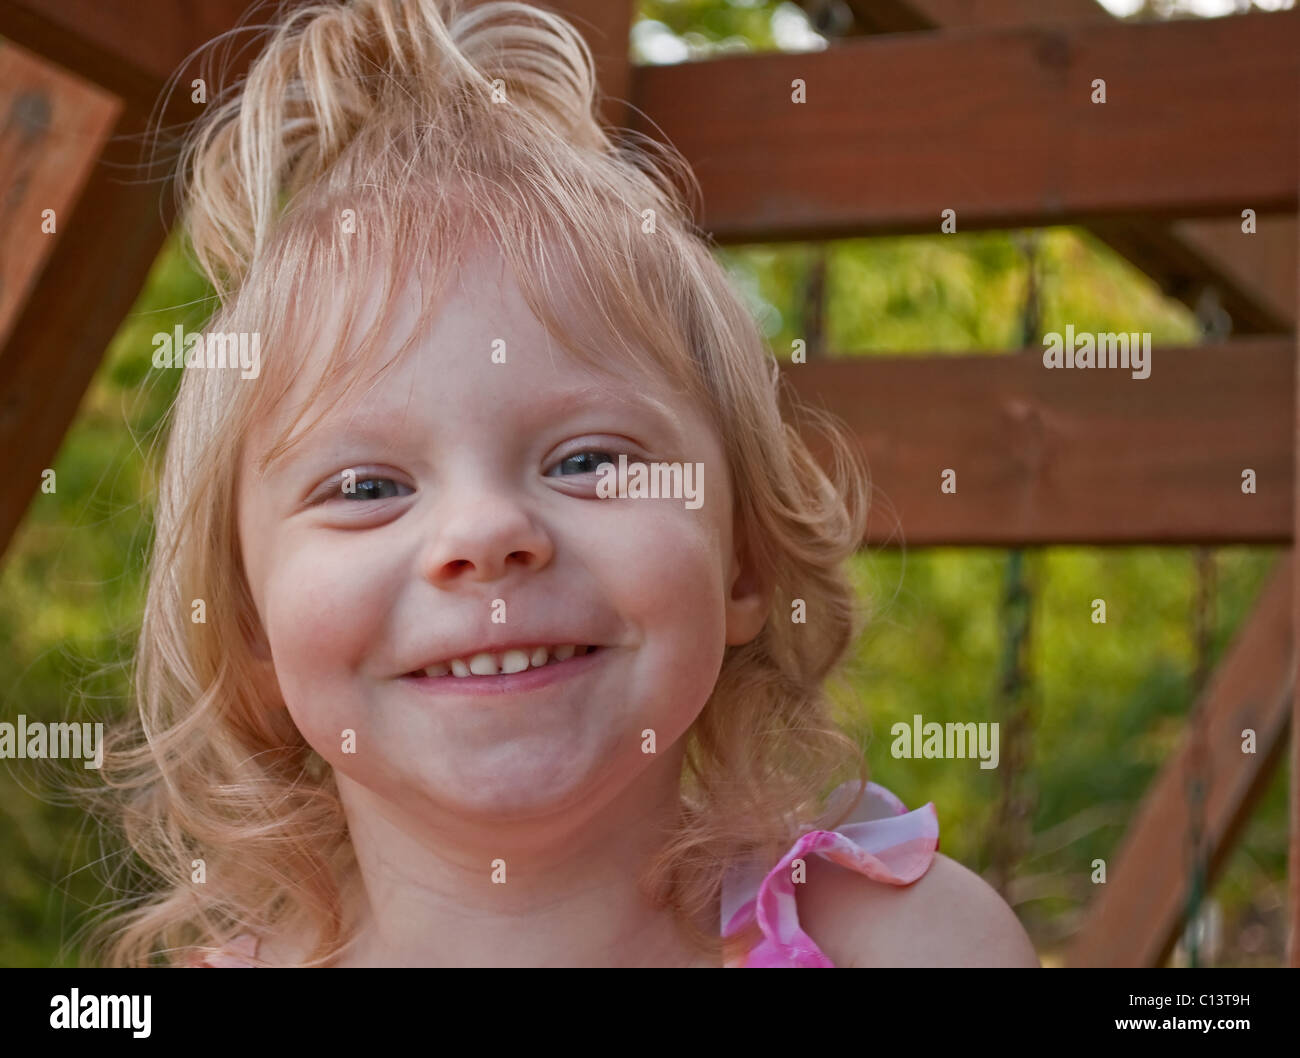 This cute 2 year old Caucasian girl with blond hair, and a pony tail on top  of her head is smiling and happy while being outdoor